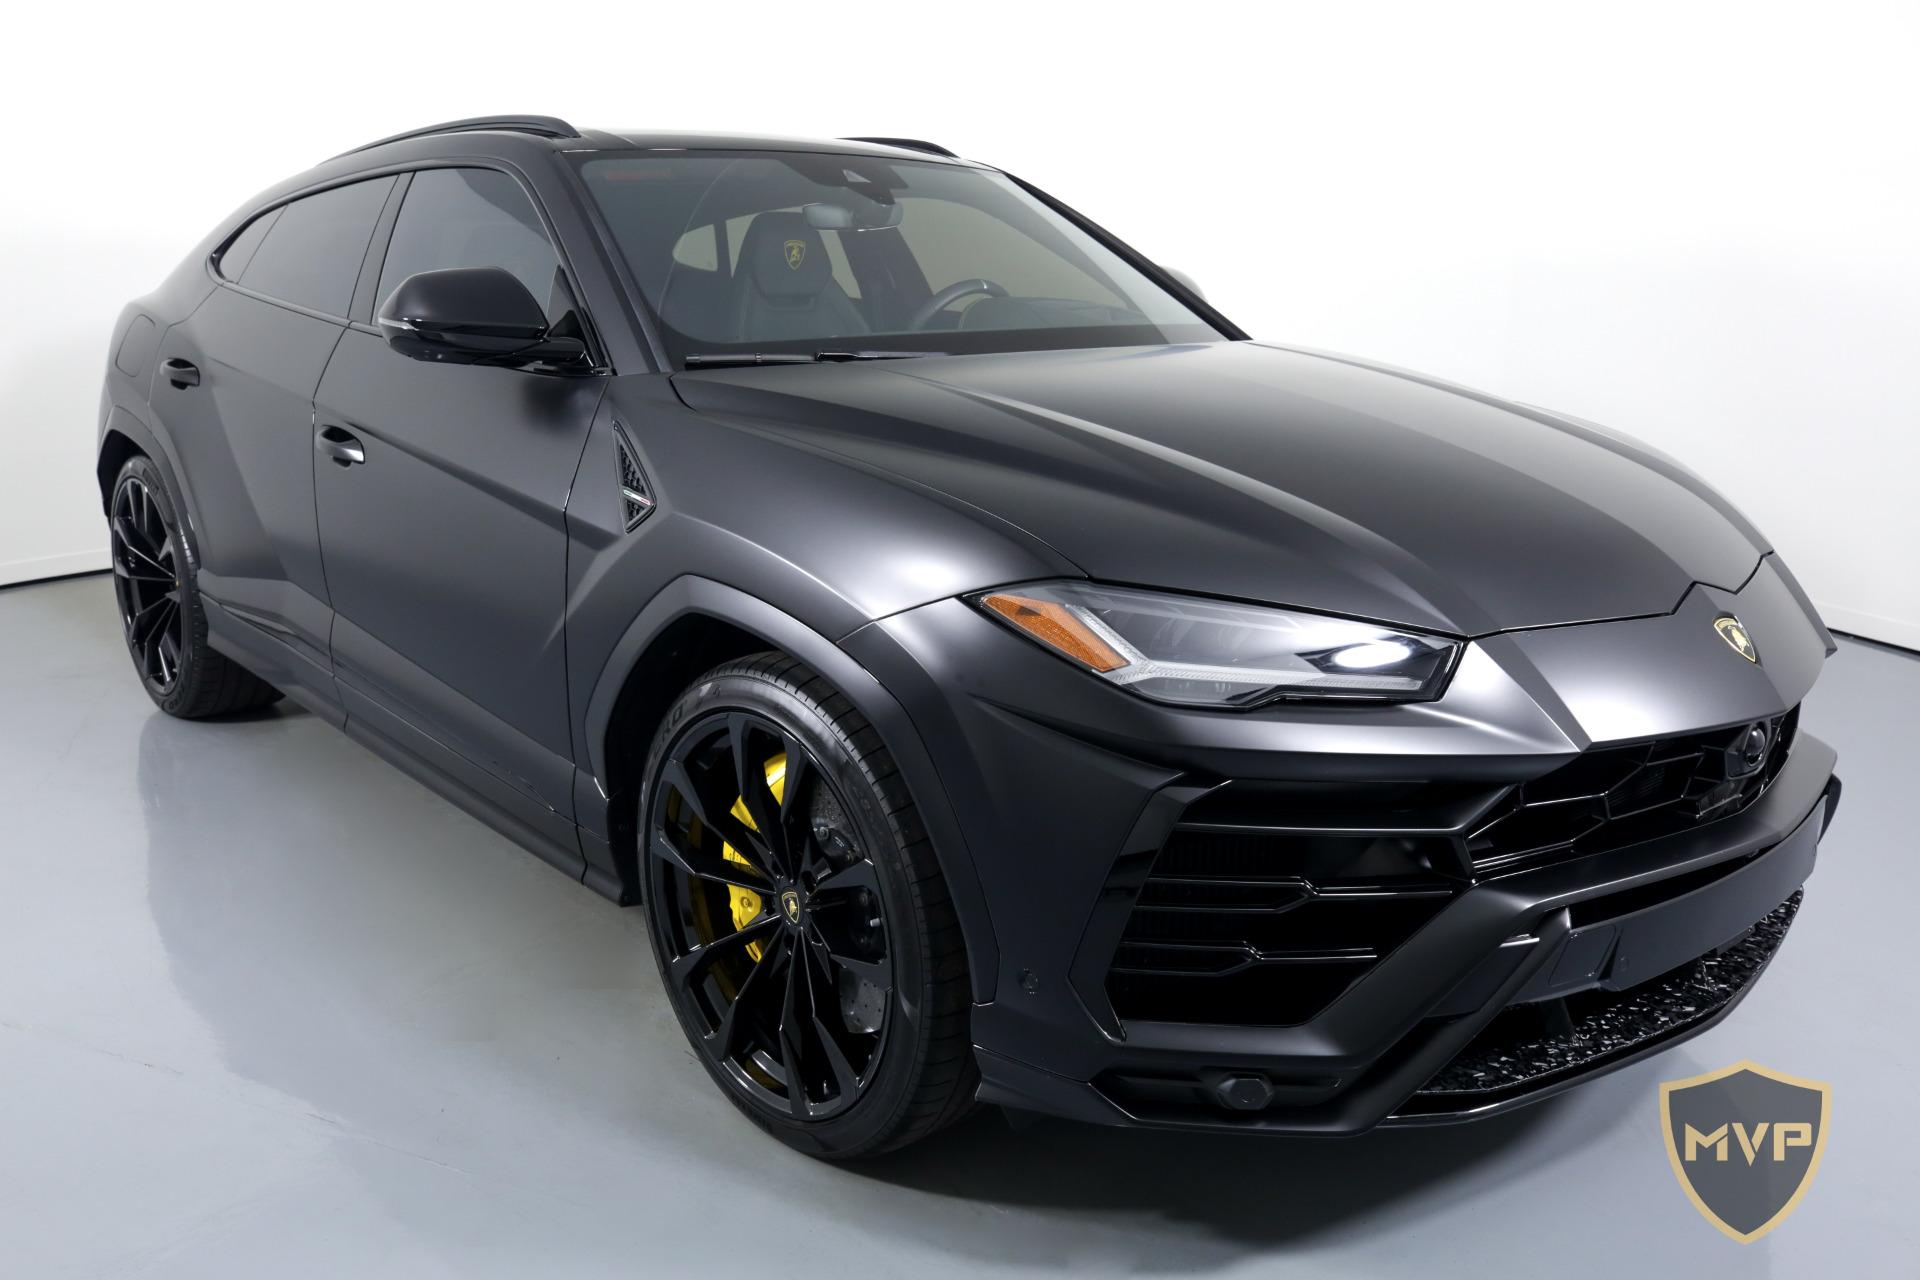 used 2020 lamborghini urus for sale 1 699 mvp charlotte stock a06478 used 2020 lamborghini urus for sale 1